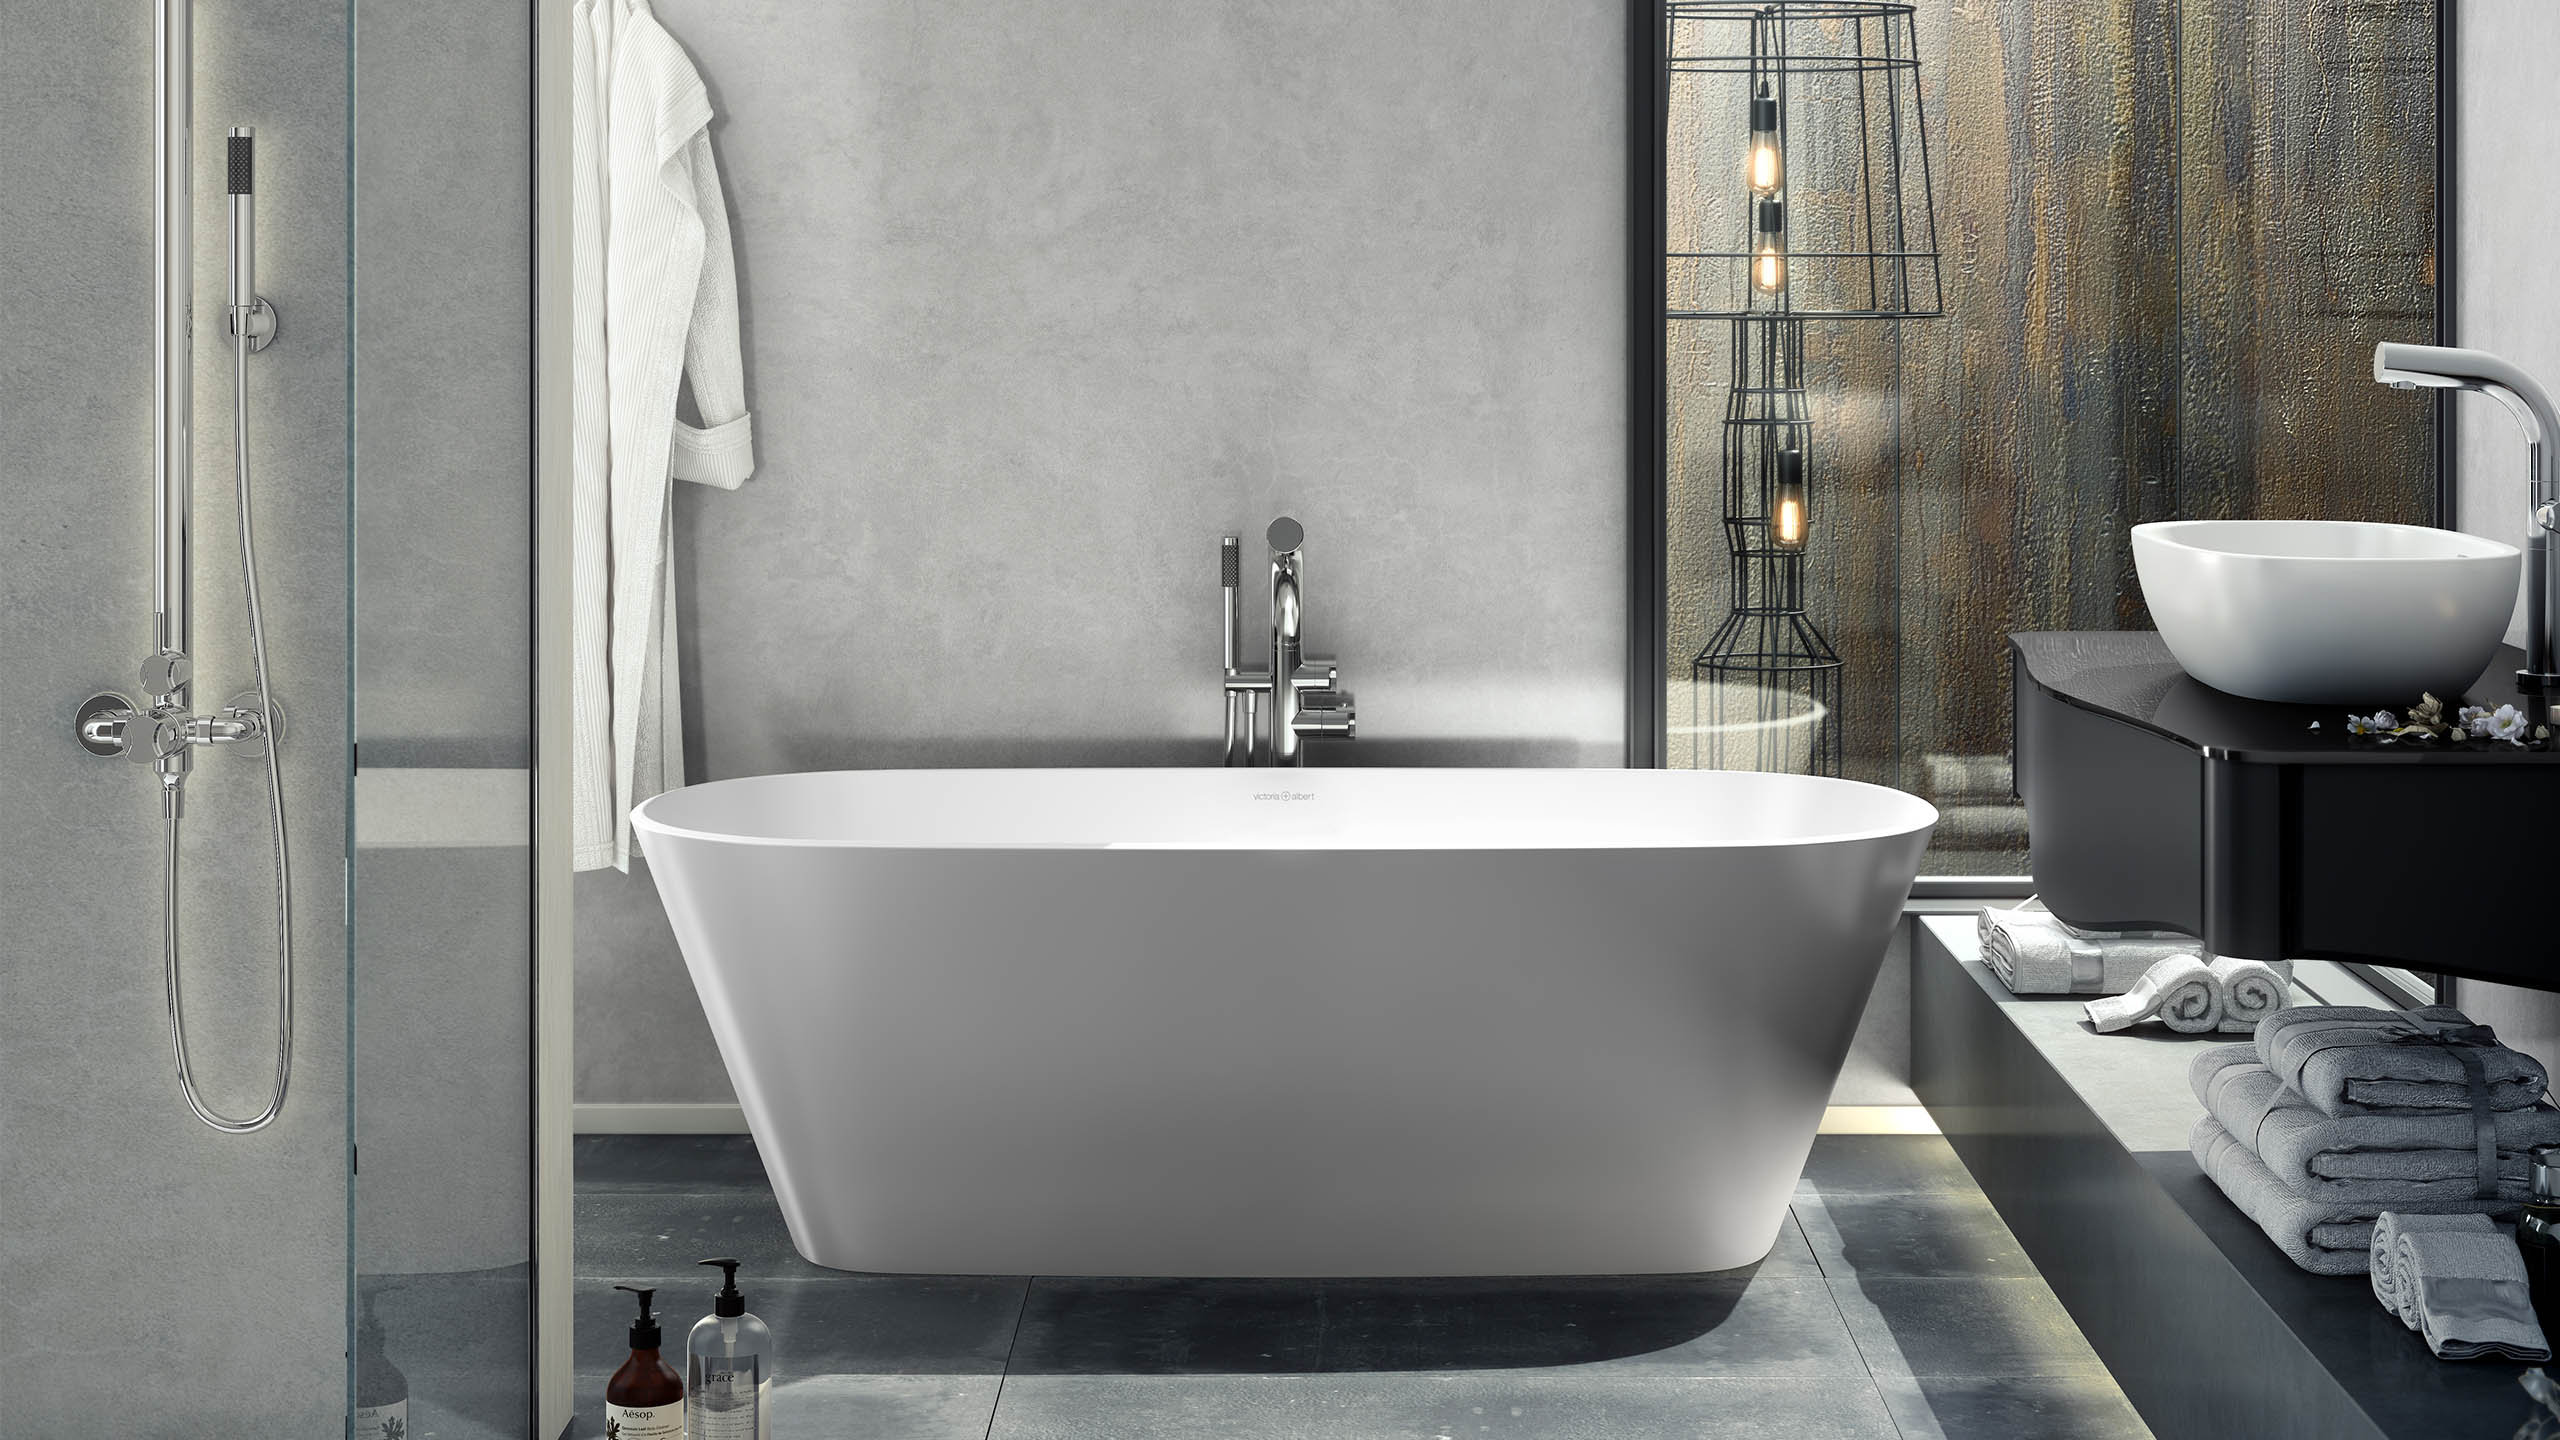 Gro agencies products luxury european bathroom for Bathroom decor osborne park